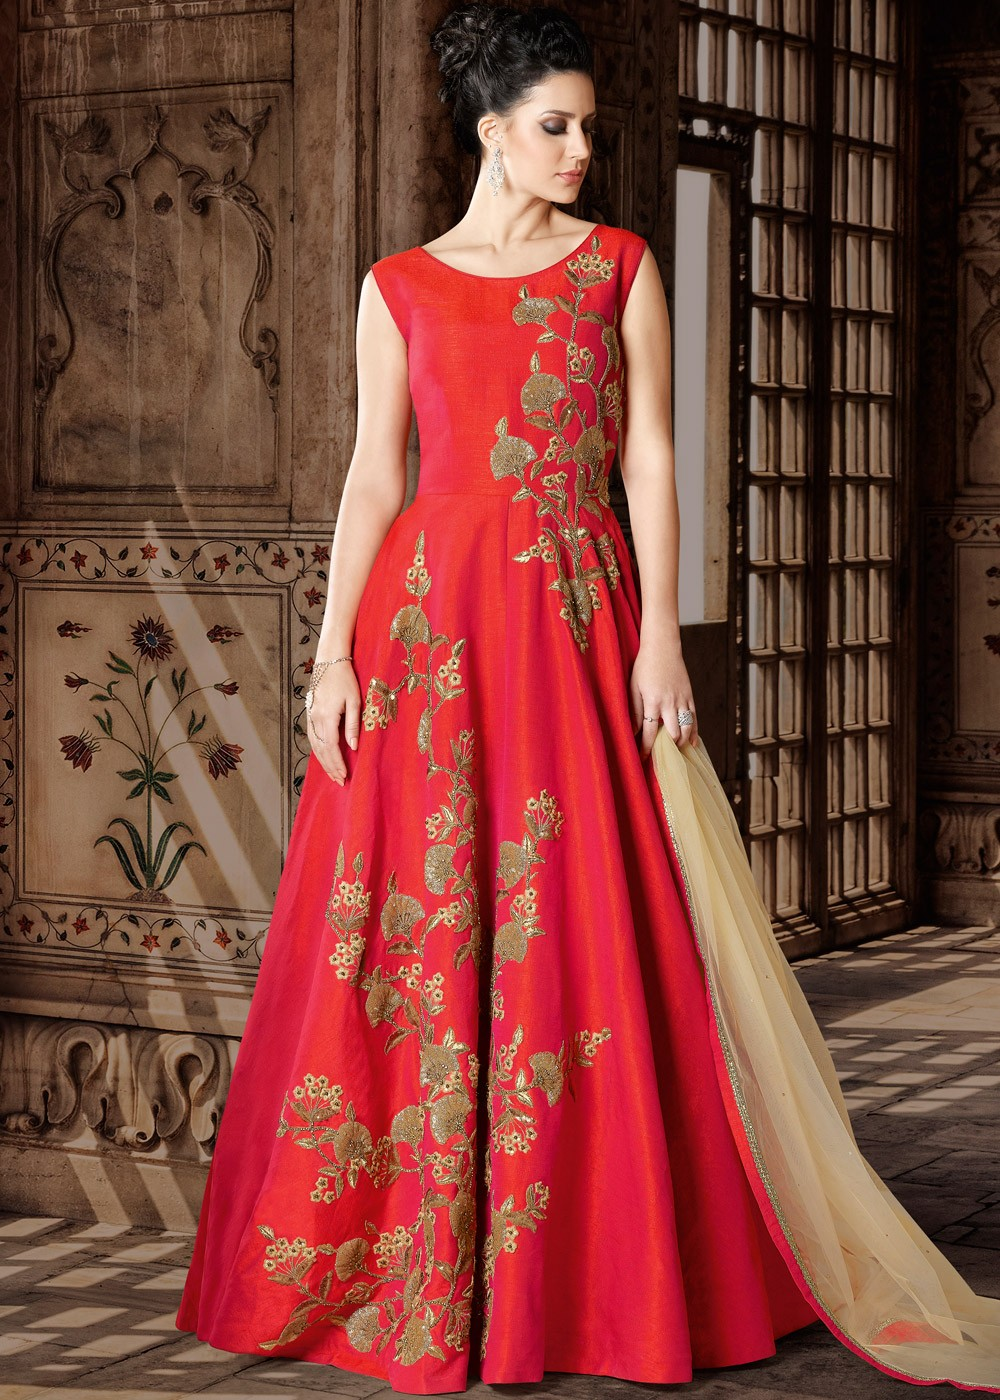 e6ad99b233 Red Art Silk Anarkali Suit with Dupatta. Tap to expand